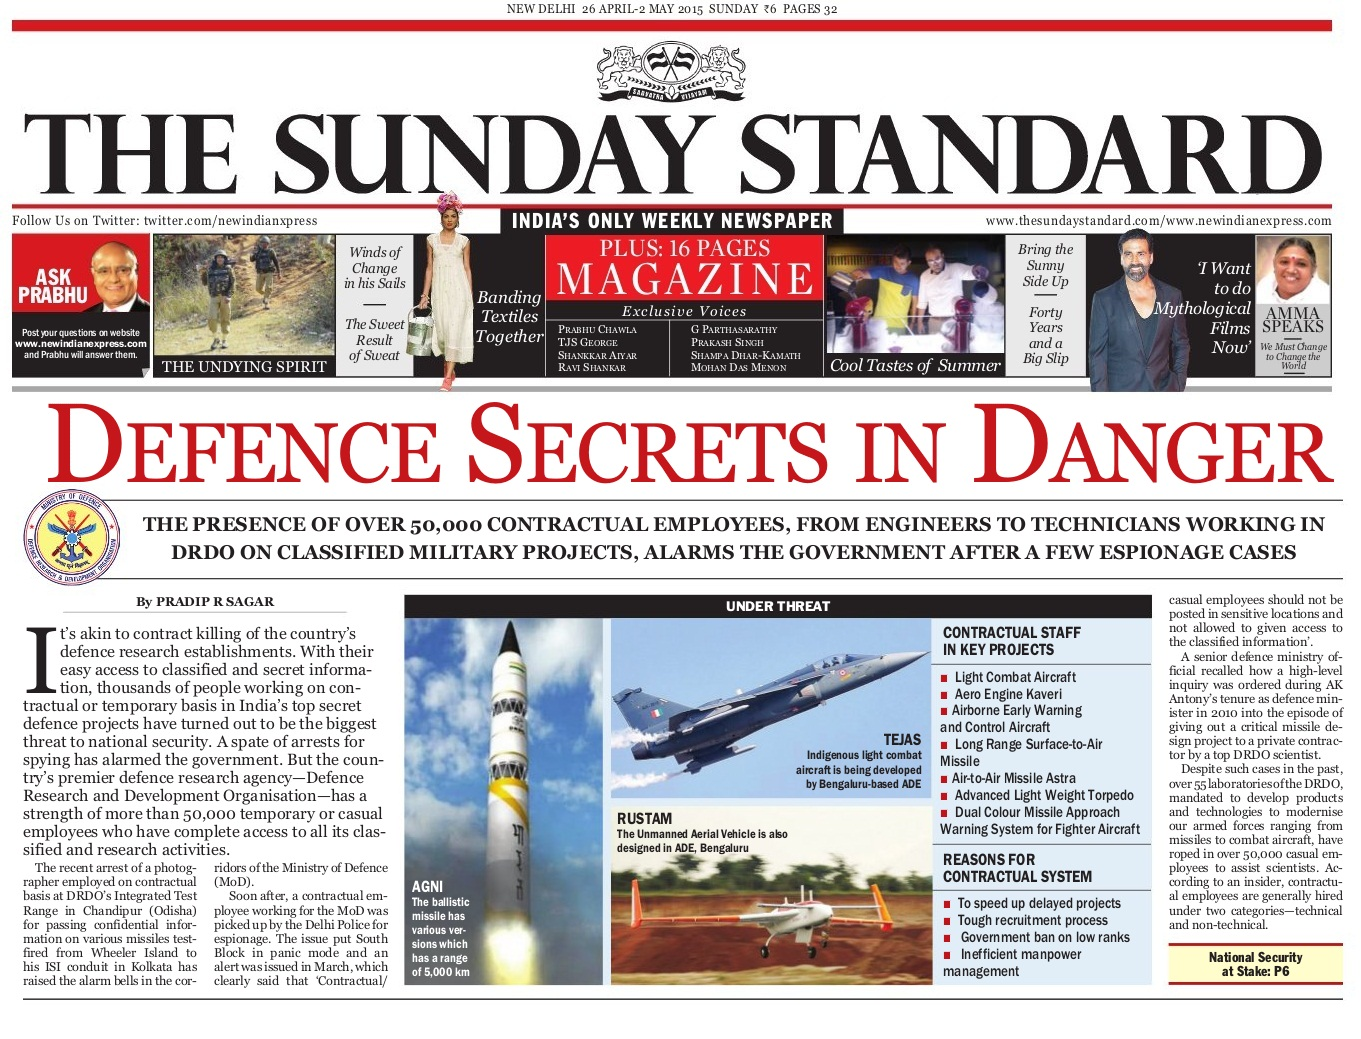 Sunday-Standard-26 April - 2May-2015